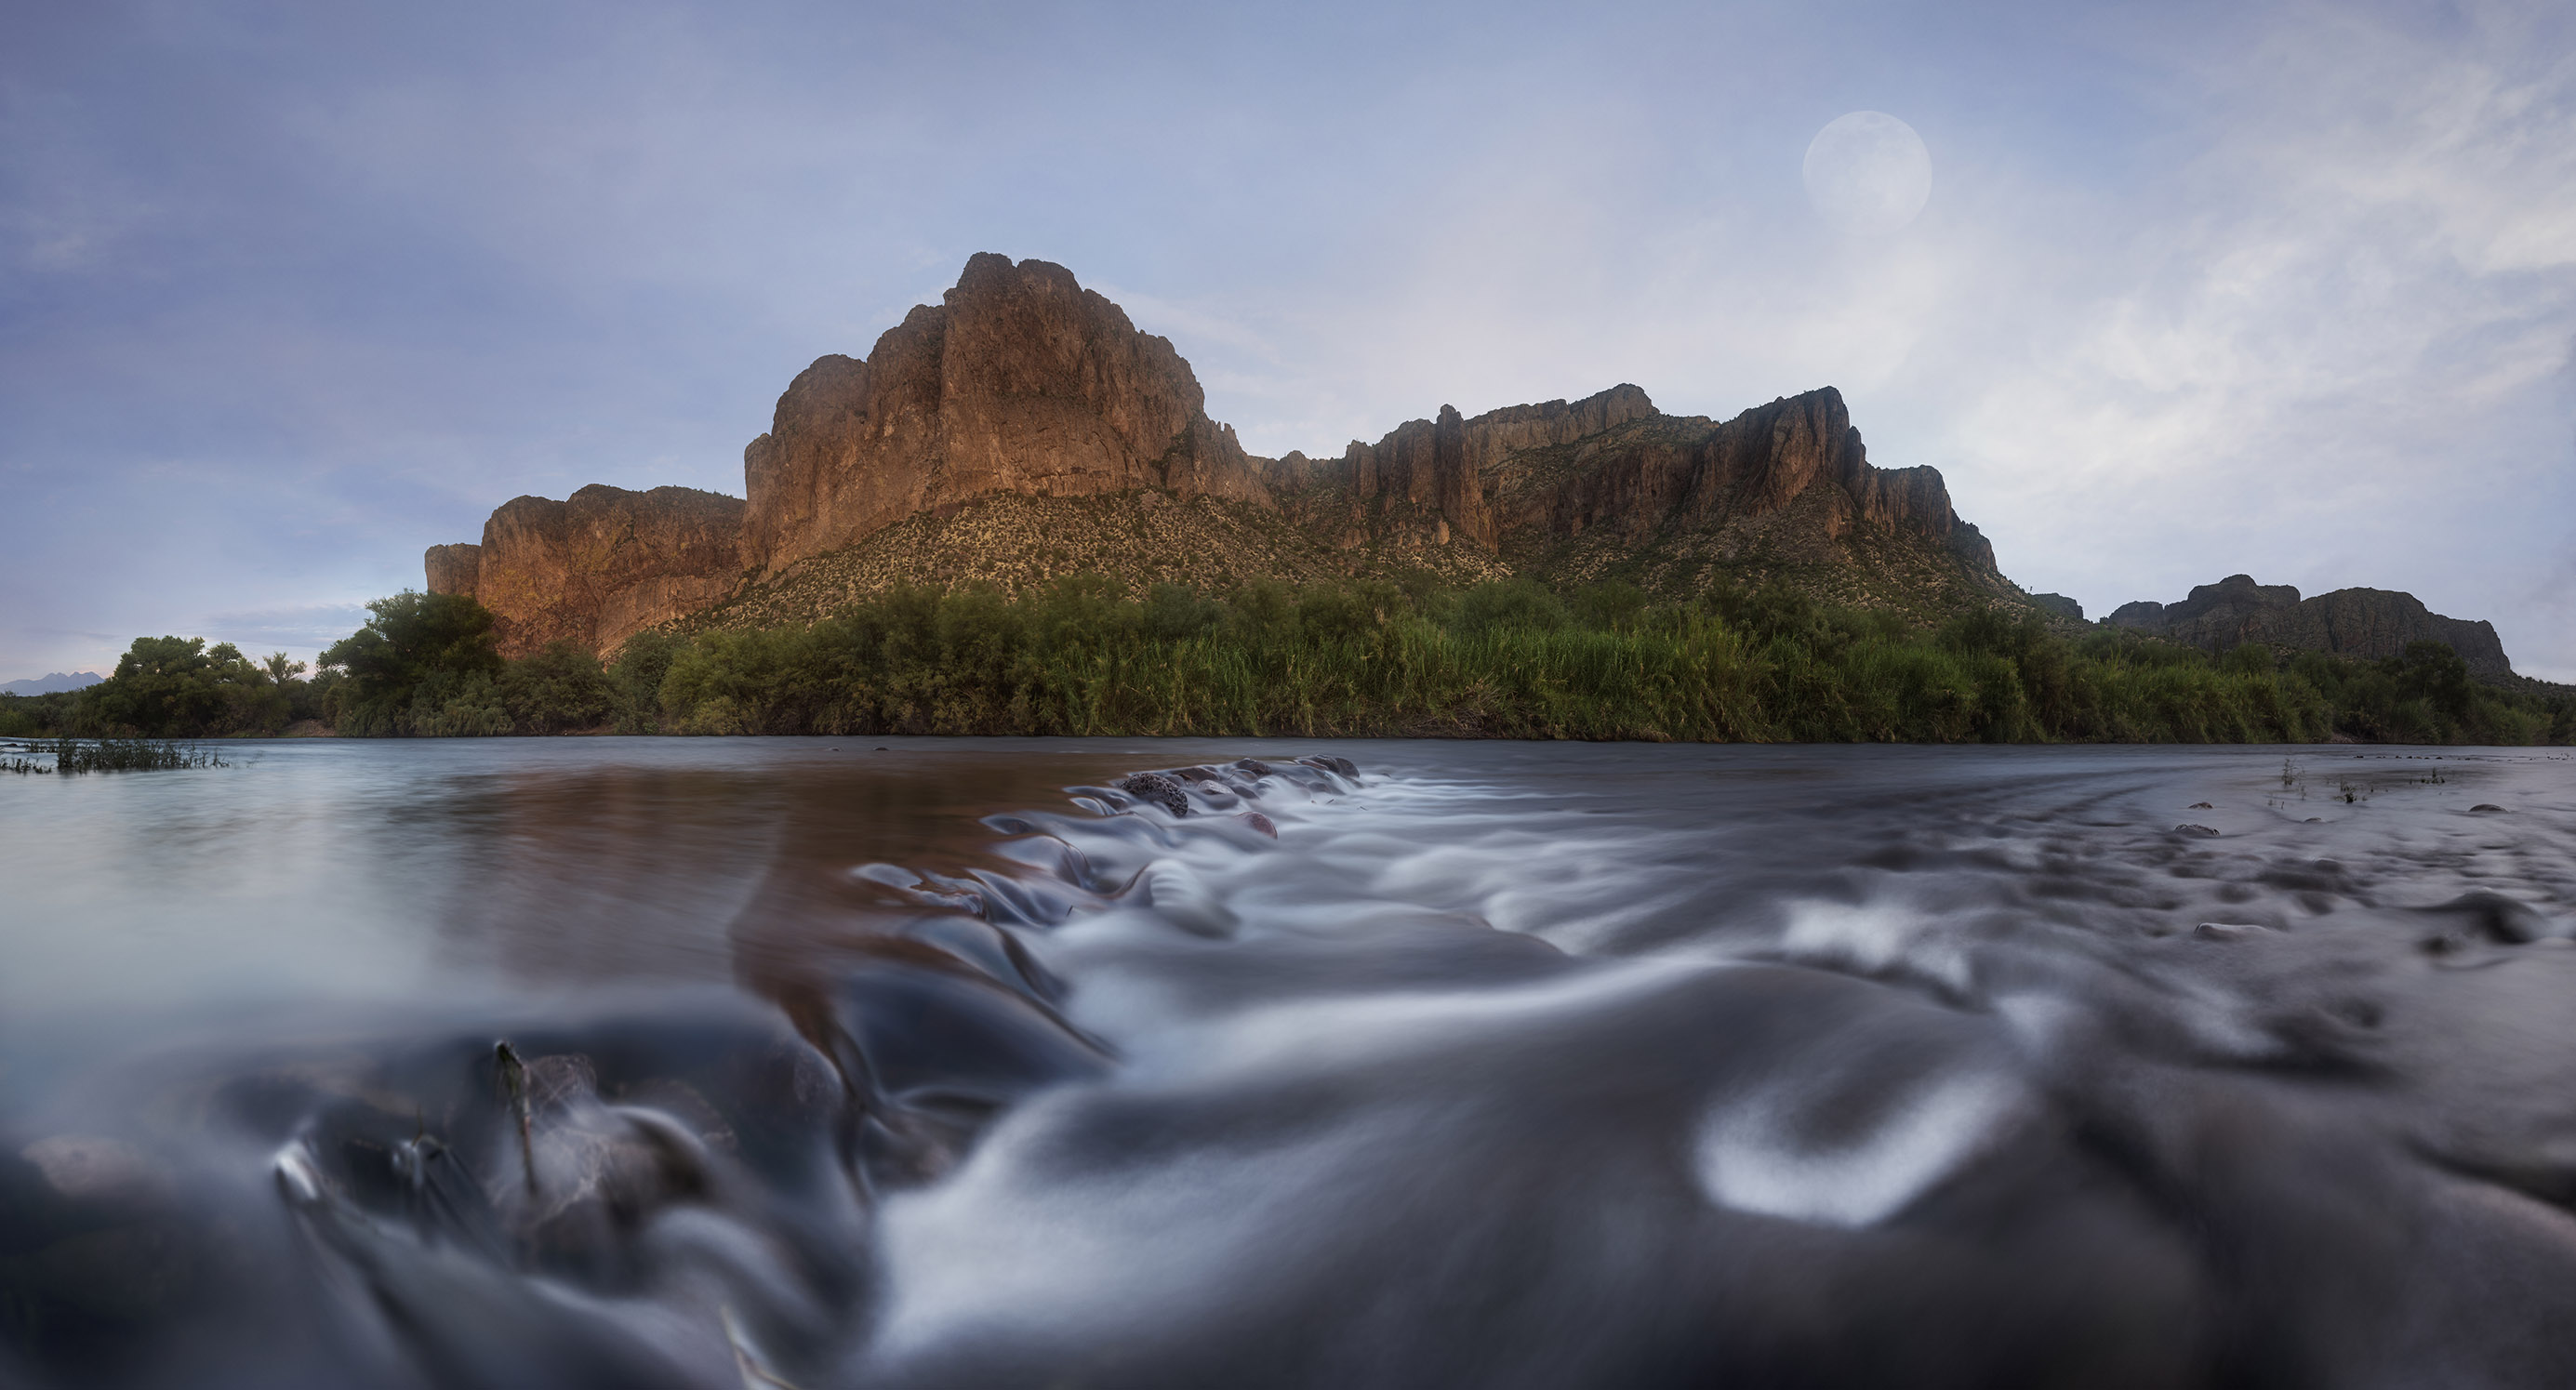 arizona landscape photography, salt river arizona, salt river bluffs, arizona landscape photographer